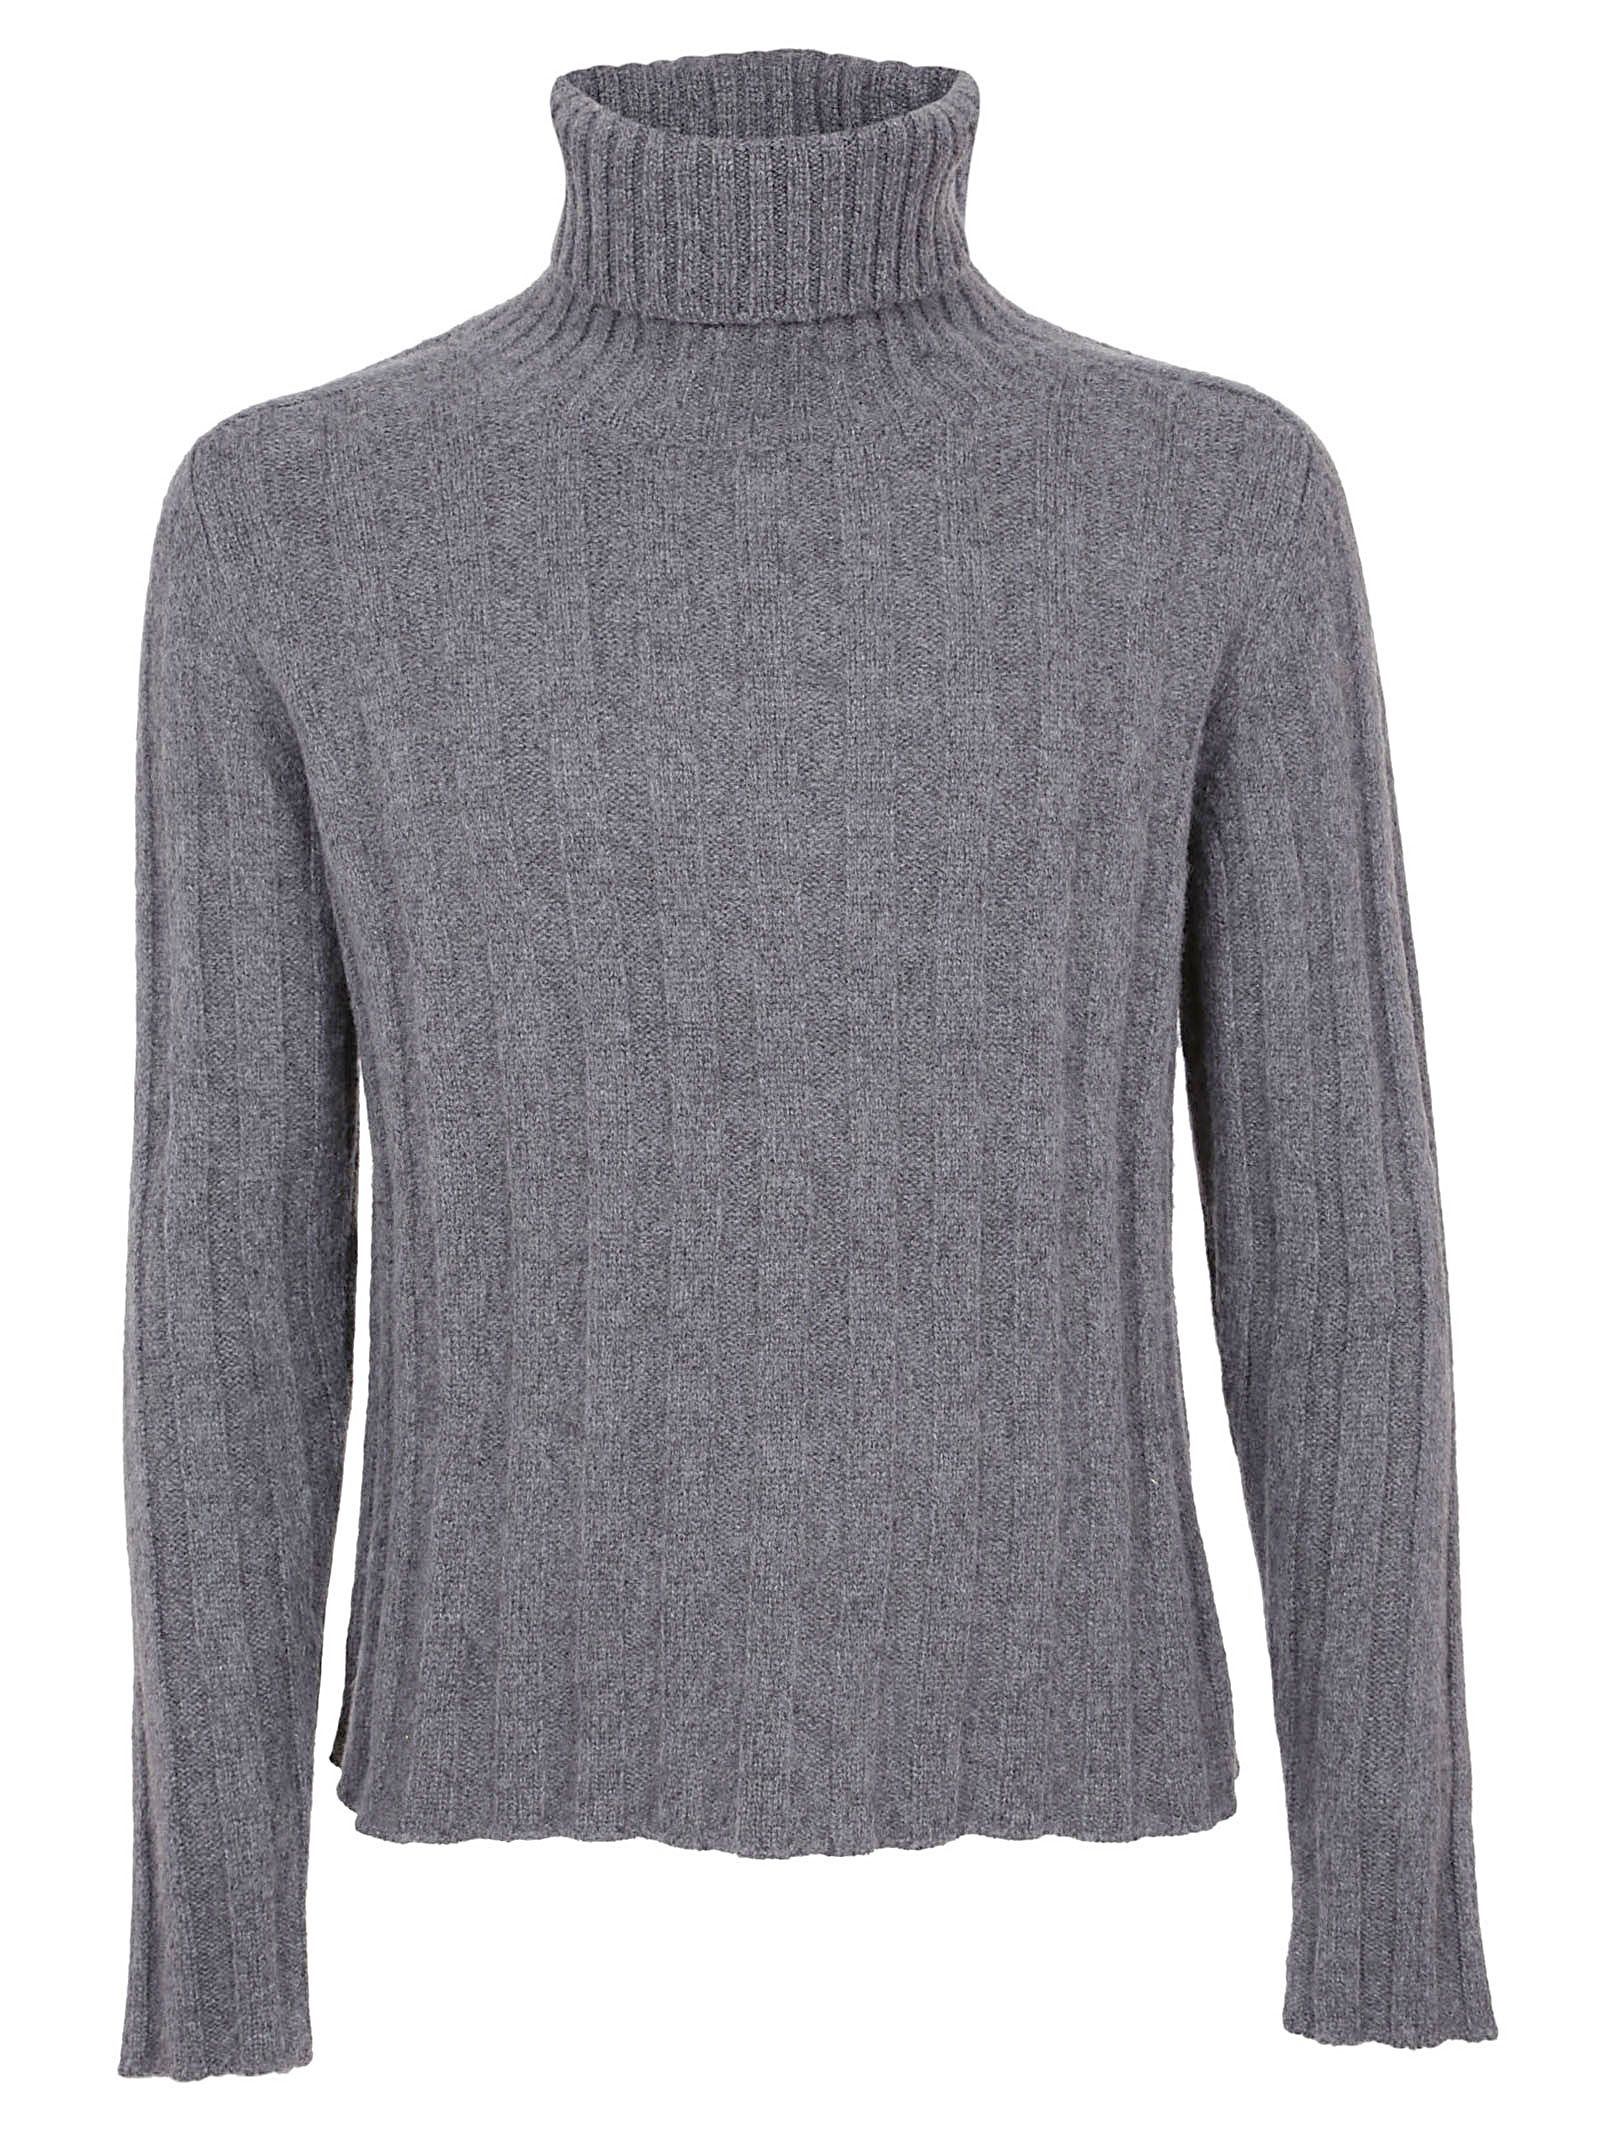 MASSIMO PIOMBO Ribbed Sweater in 8